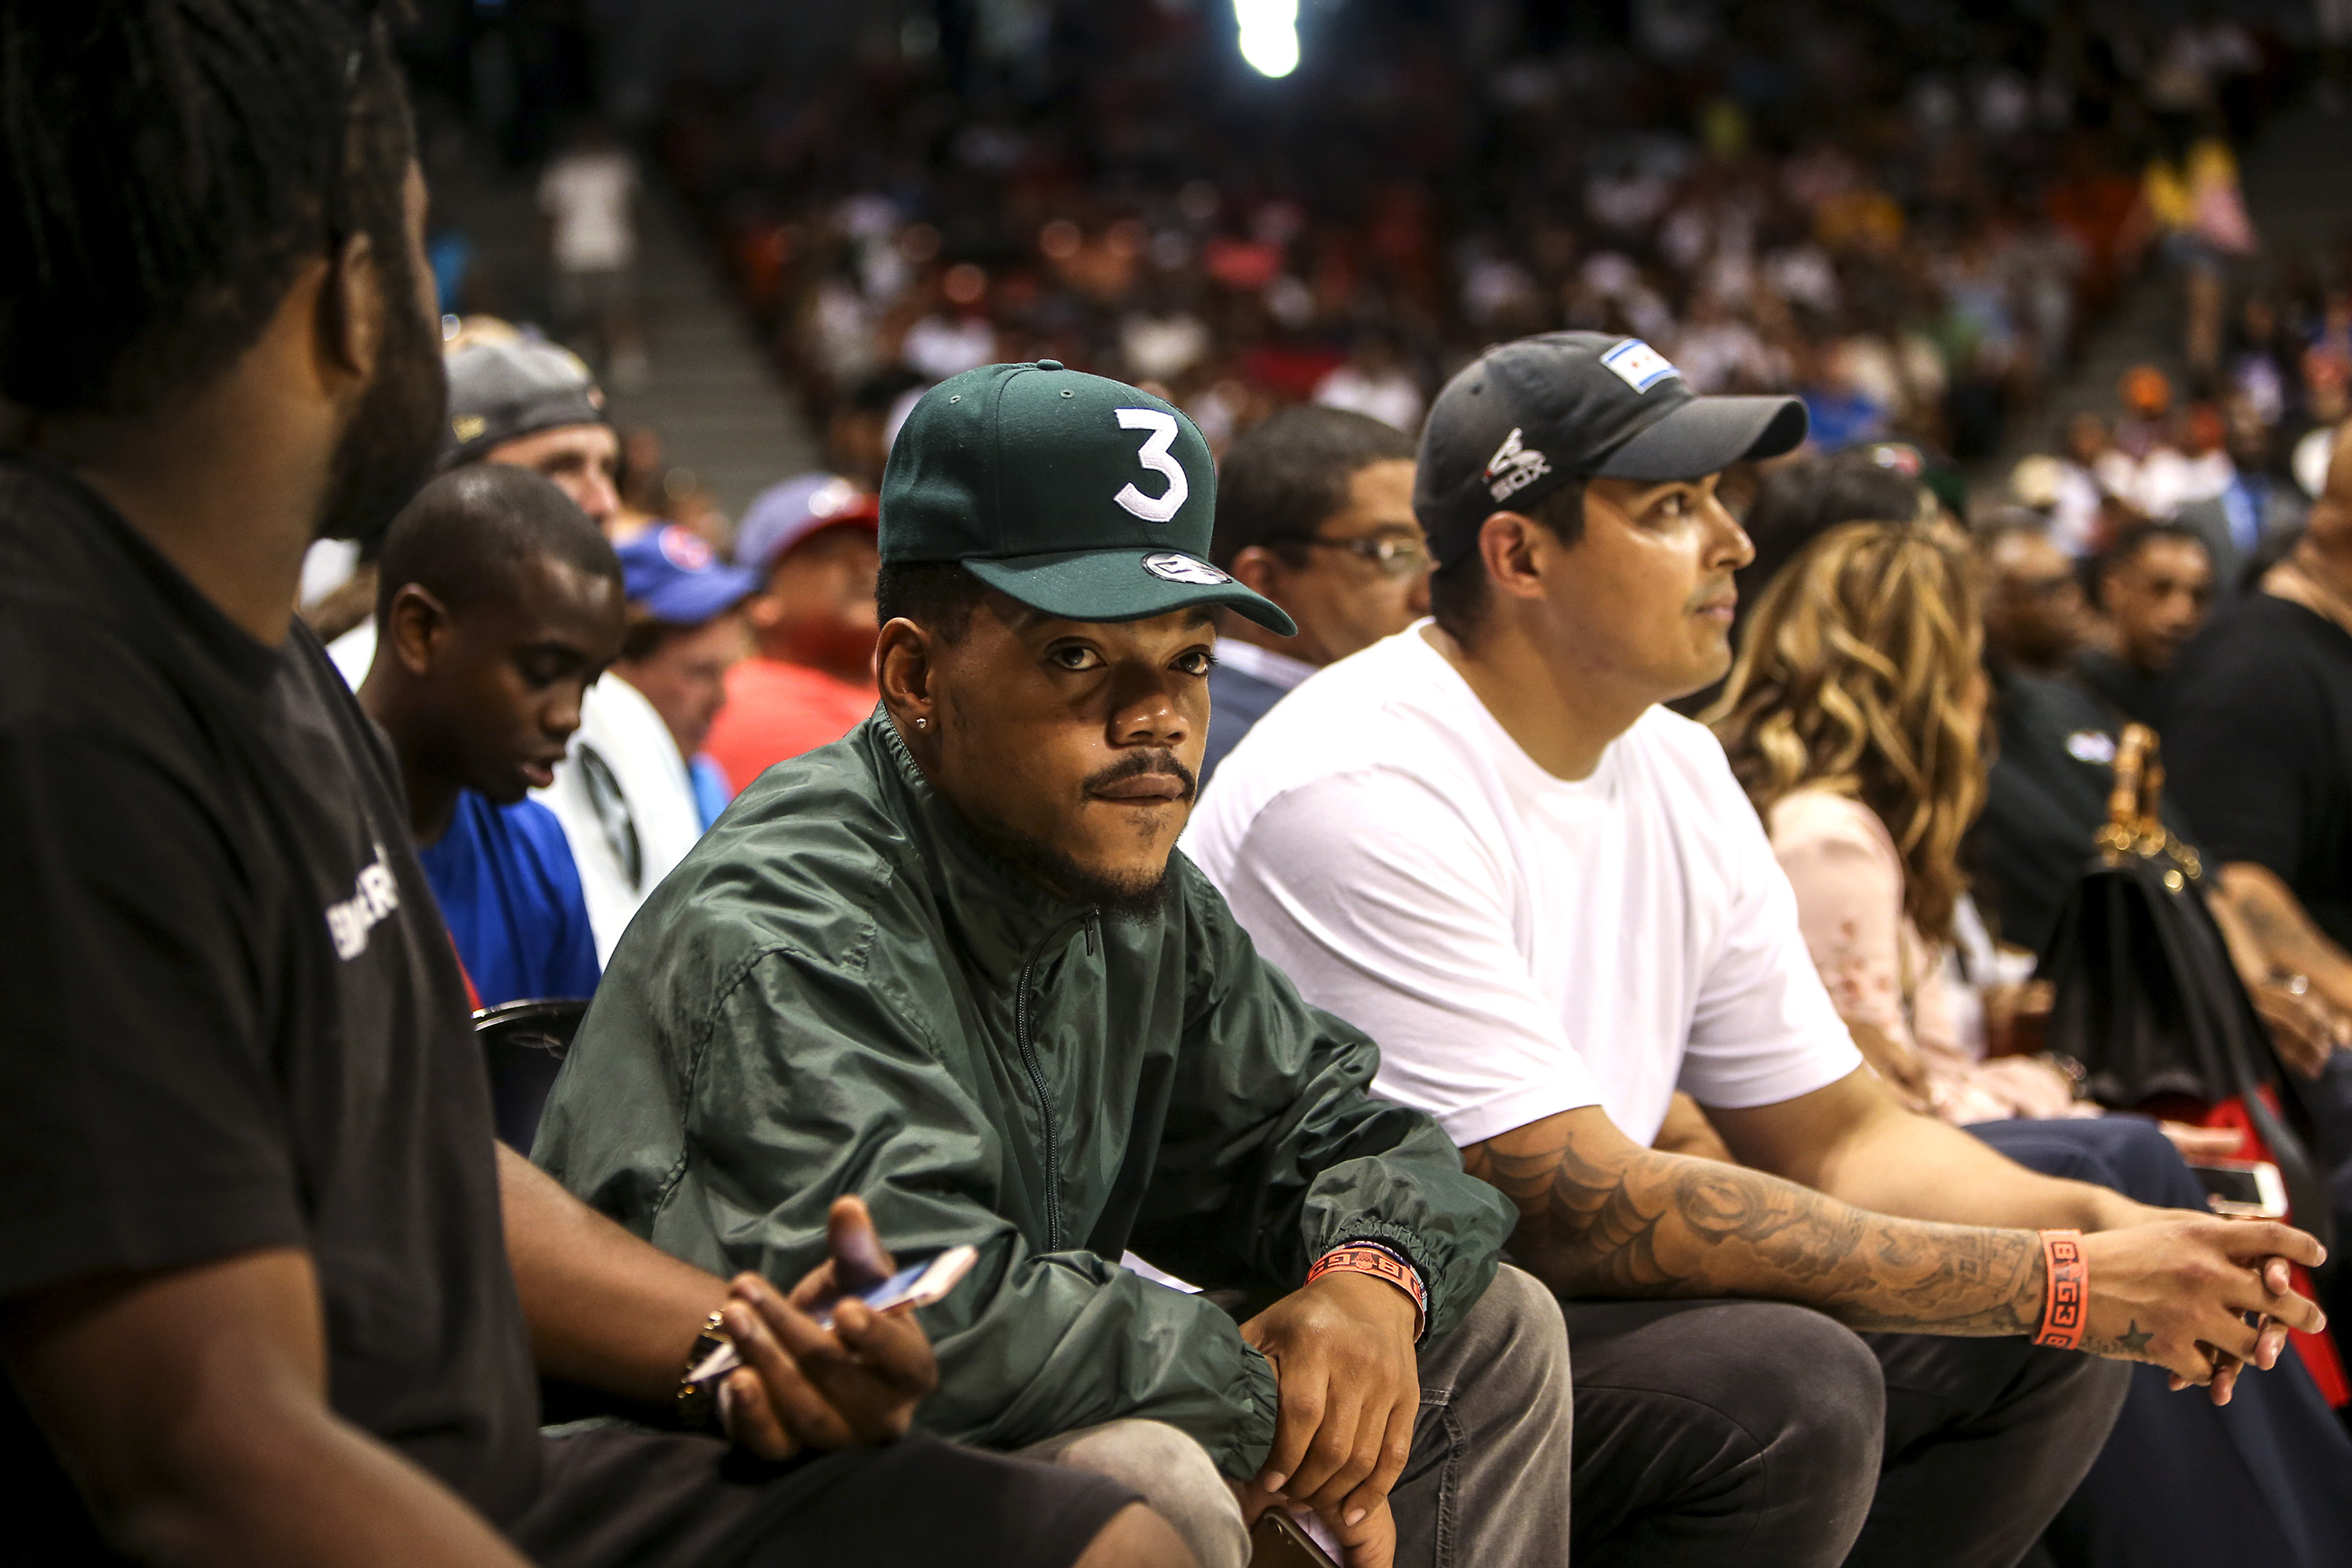 The Big3 stopped by Chicago for a fun, competitive day of basketball